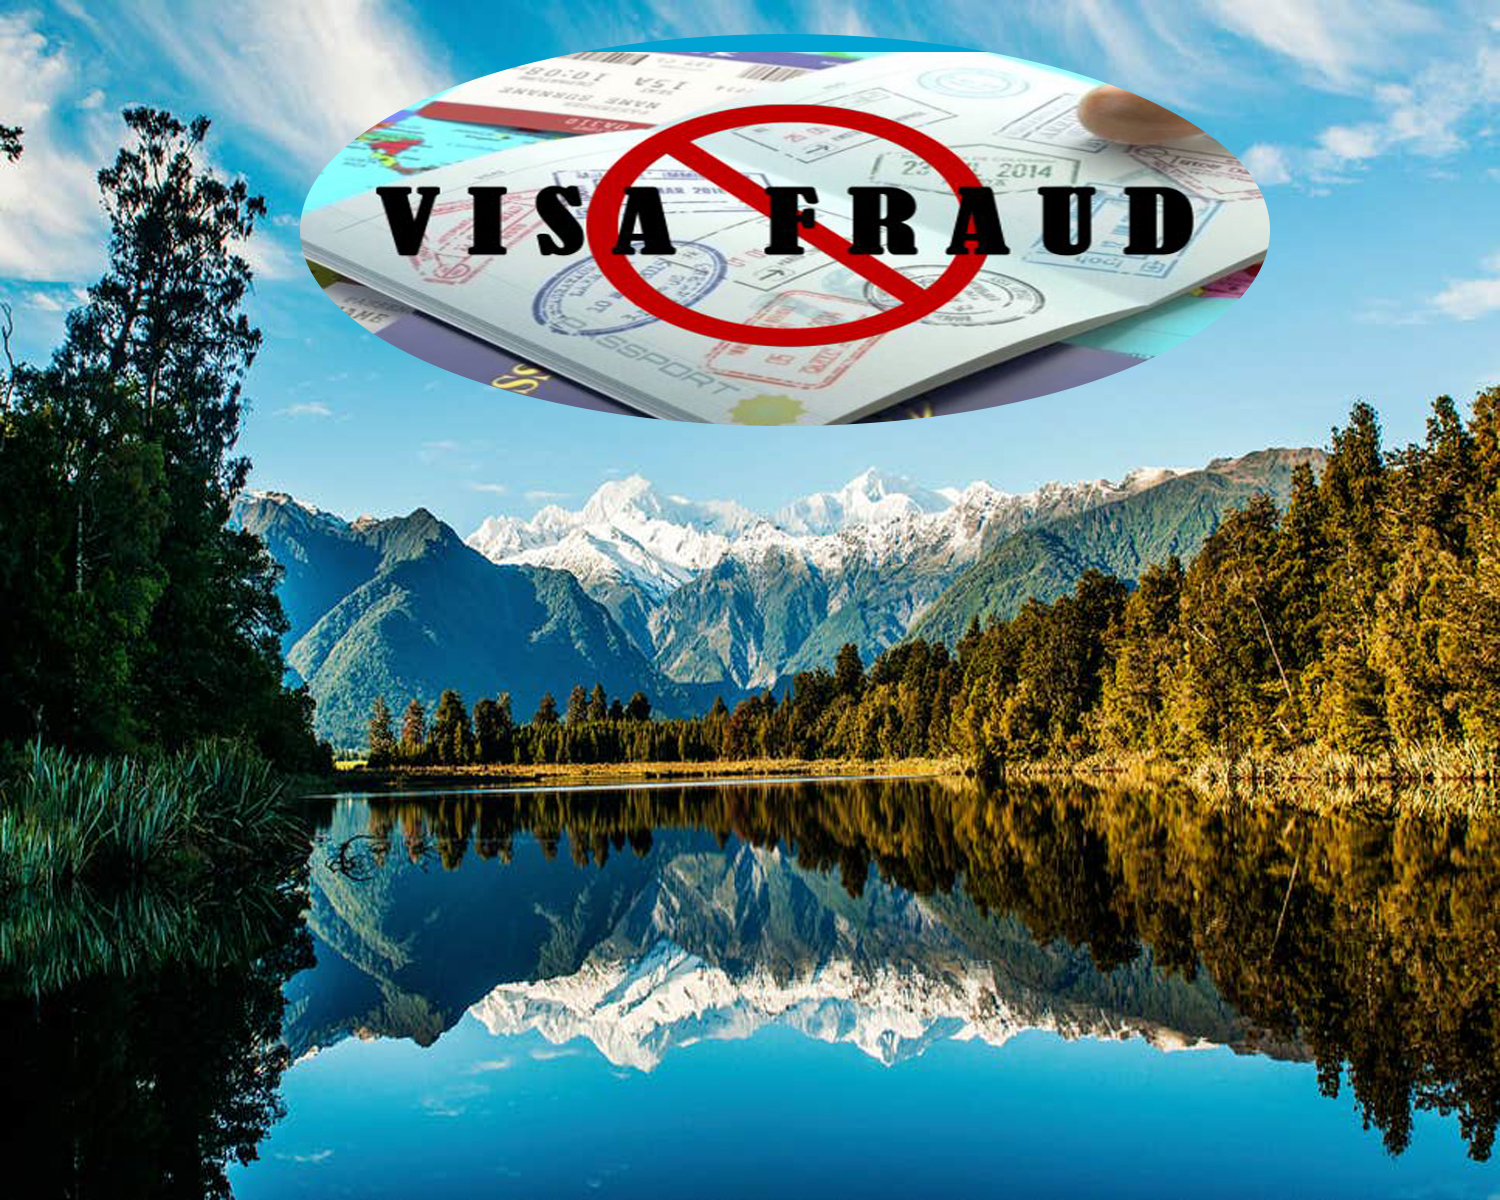 New Zealand Sees Growth in eVisa Frauds